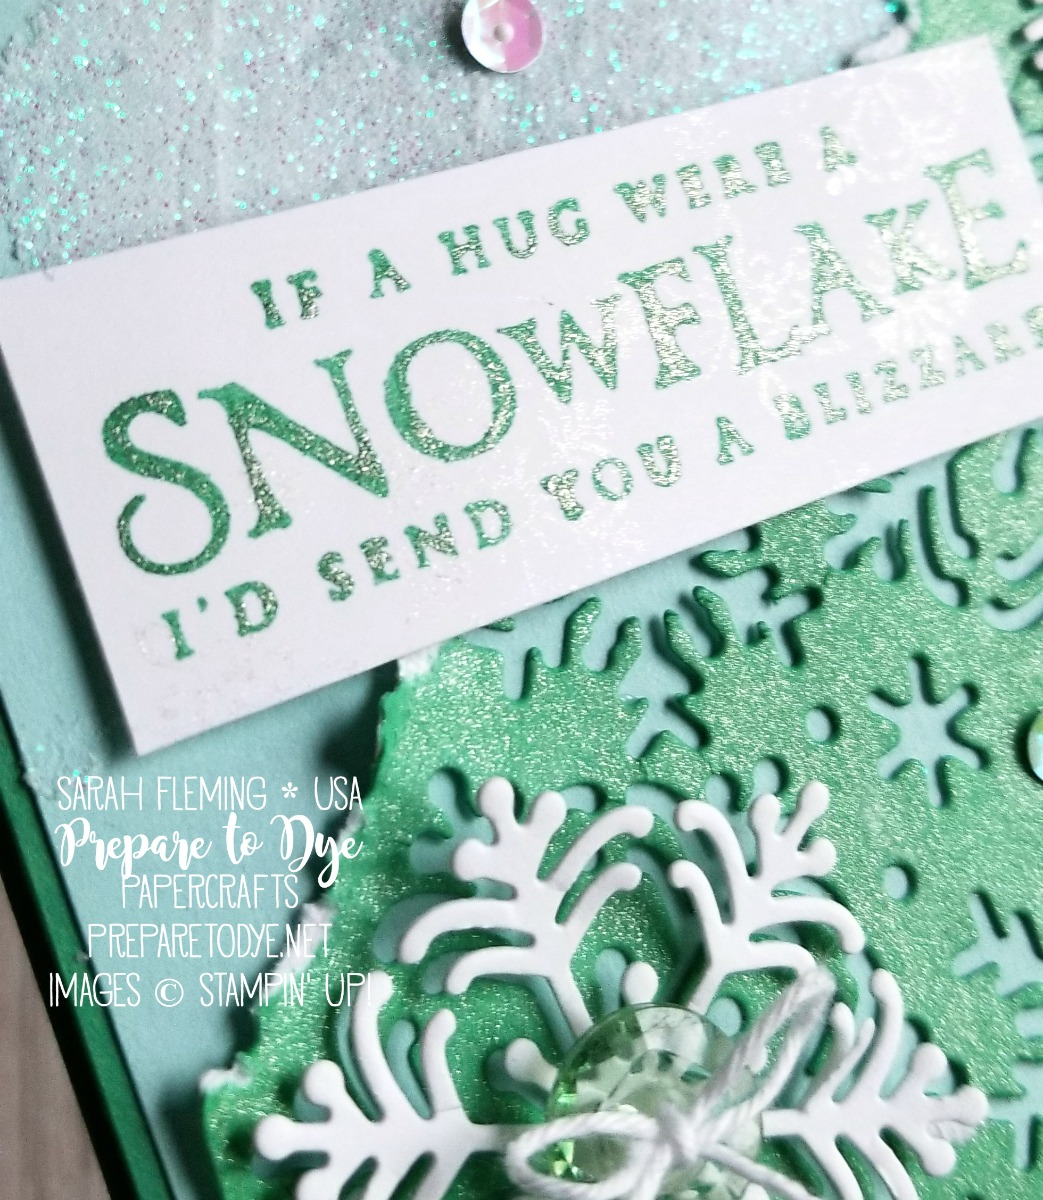 Stampin' Up! Beautiful Blizzard bundle with Blizzard thinlits die, Champagne Mist Shimmer Paint, Shimmery White Embossing Paste, Tinted Faceted Buttons, Iridescent Sequins - Sarah Fleming - Prepare to Dye Papercrafts